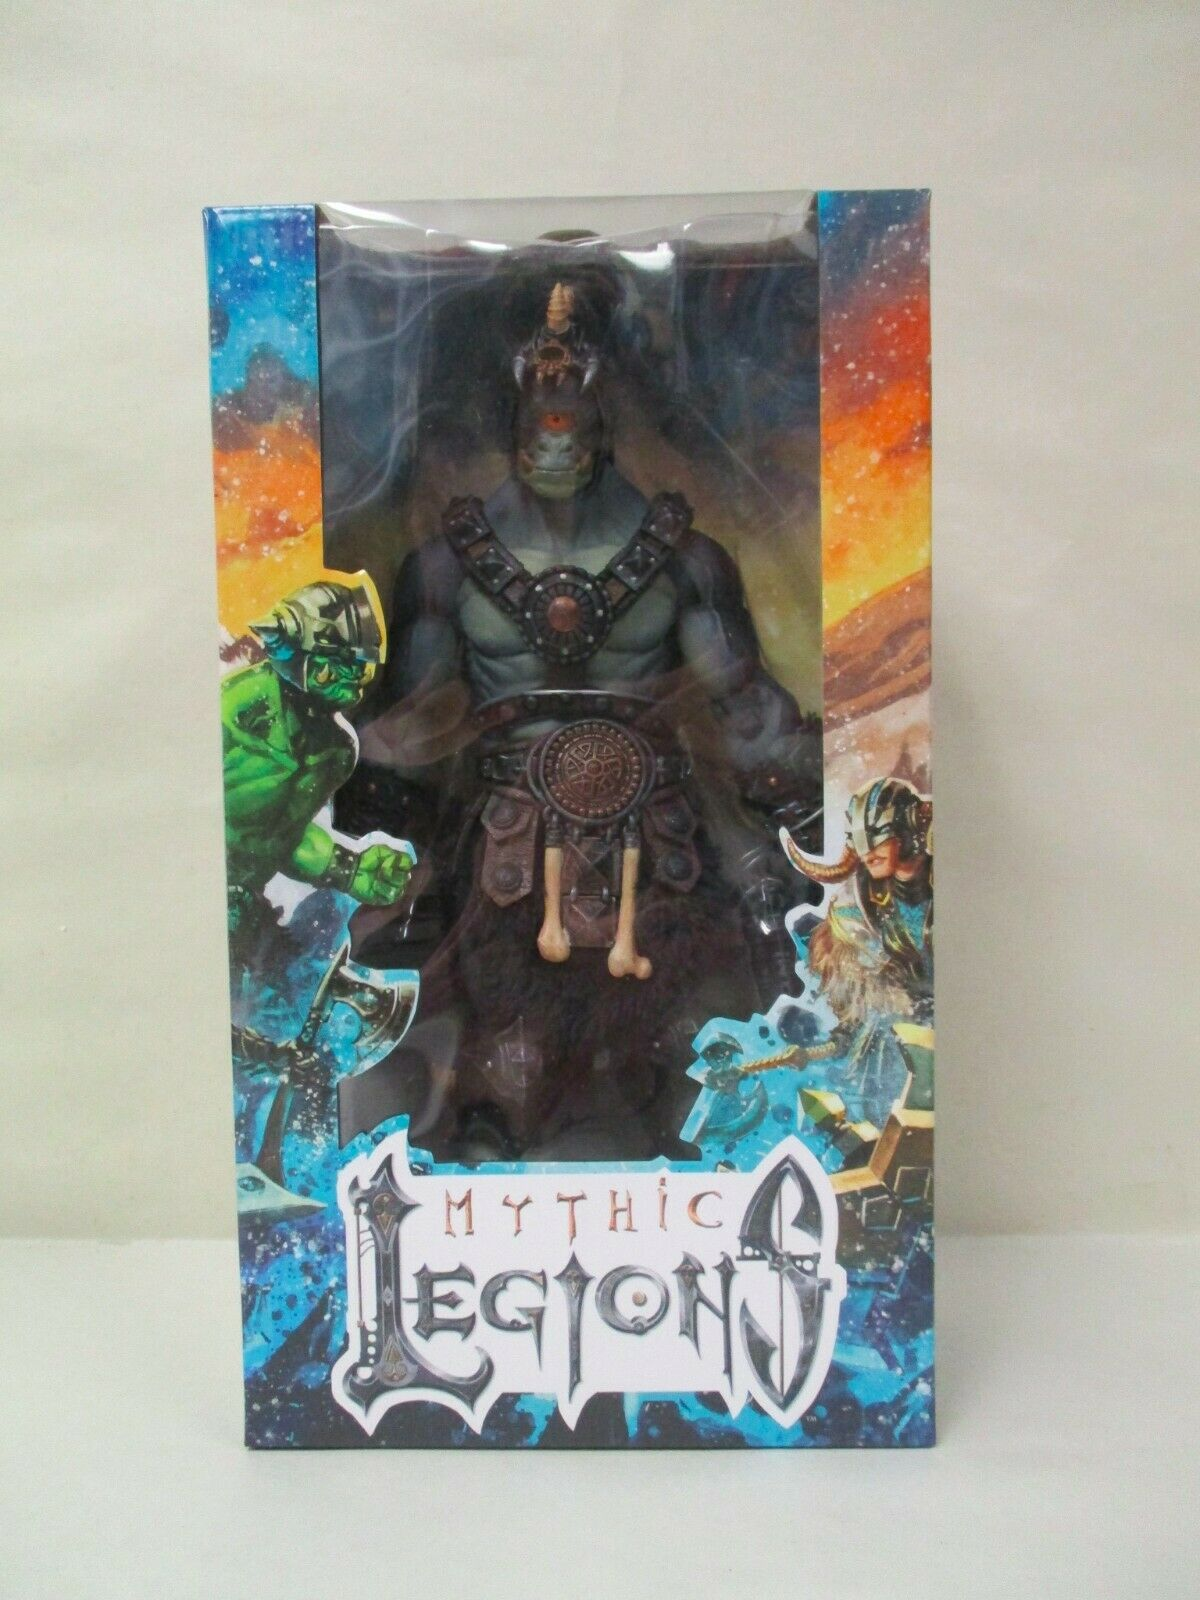 2019 4 FOUR HORSESie MYTHIC LEGIONS WASTELANDS ARGEMEDES ACTION FIGURE 9  DELUXE